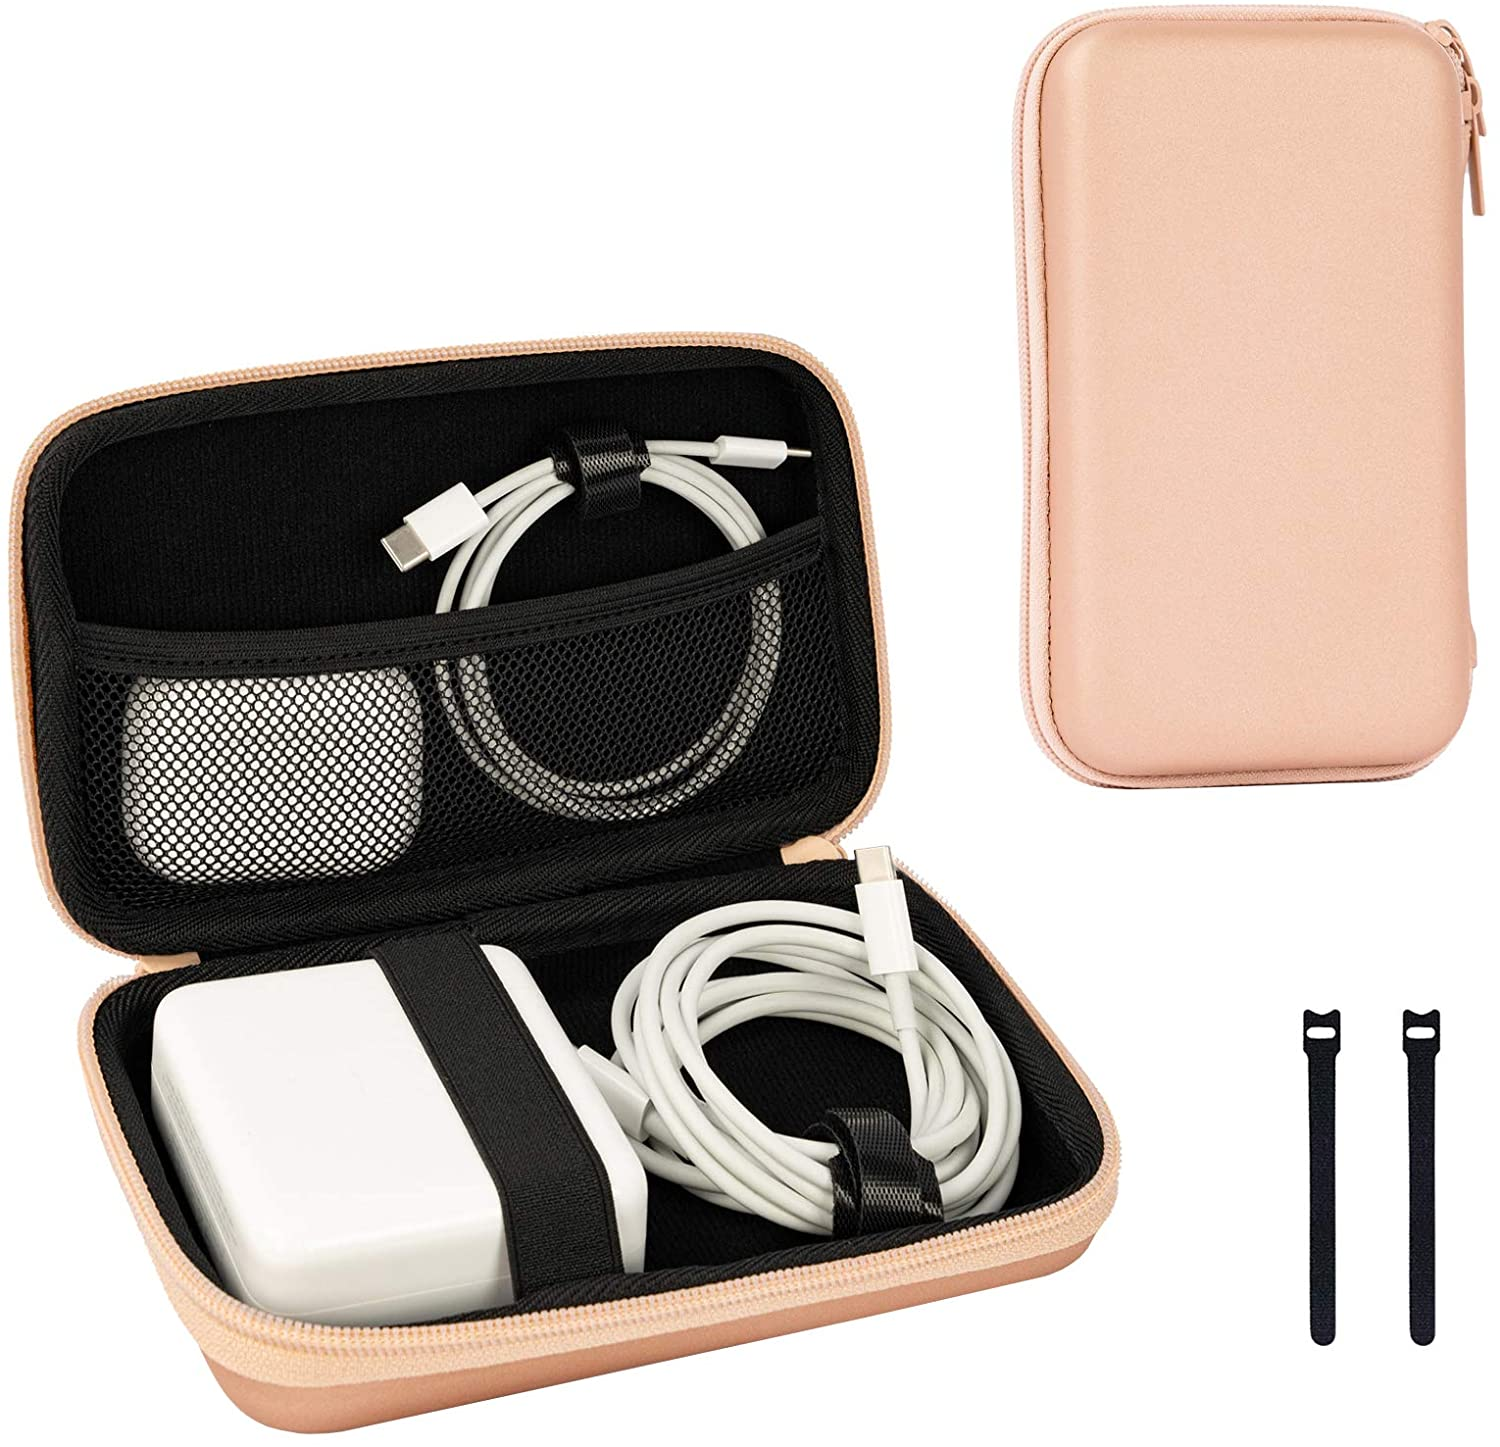 ProCase Carrying Case for MacBook Air/Pro Power Adapter, MagSafe, MagSafe2, iPhone 12/12 Pro MagSafe Charger, USB C Hub, Type C Hub, USB Multiport Adapter, Portable EVA Pouch, 2 Cable Ties -Rosegold